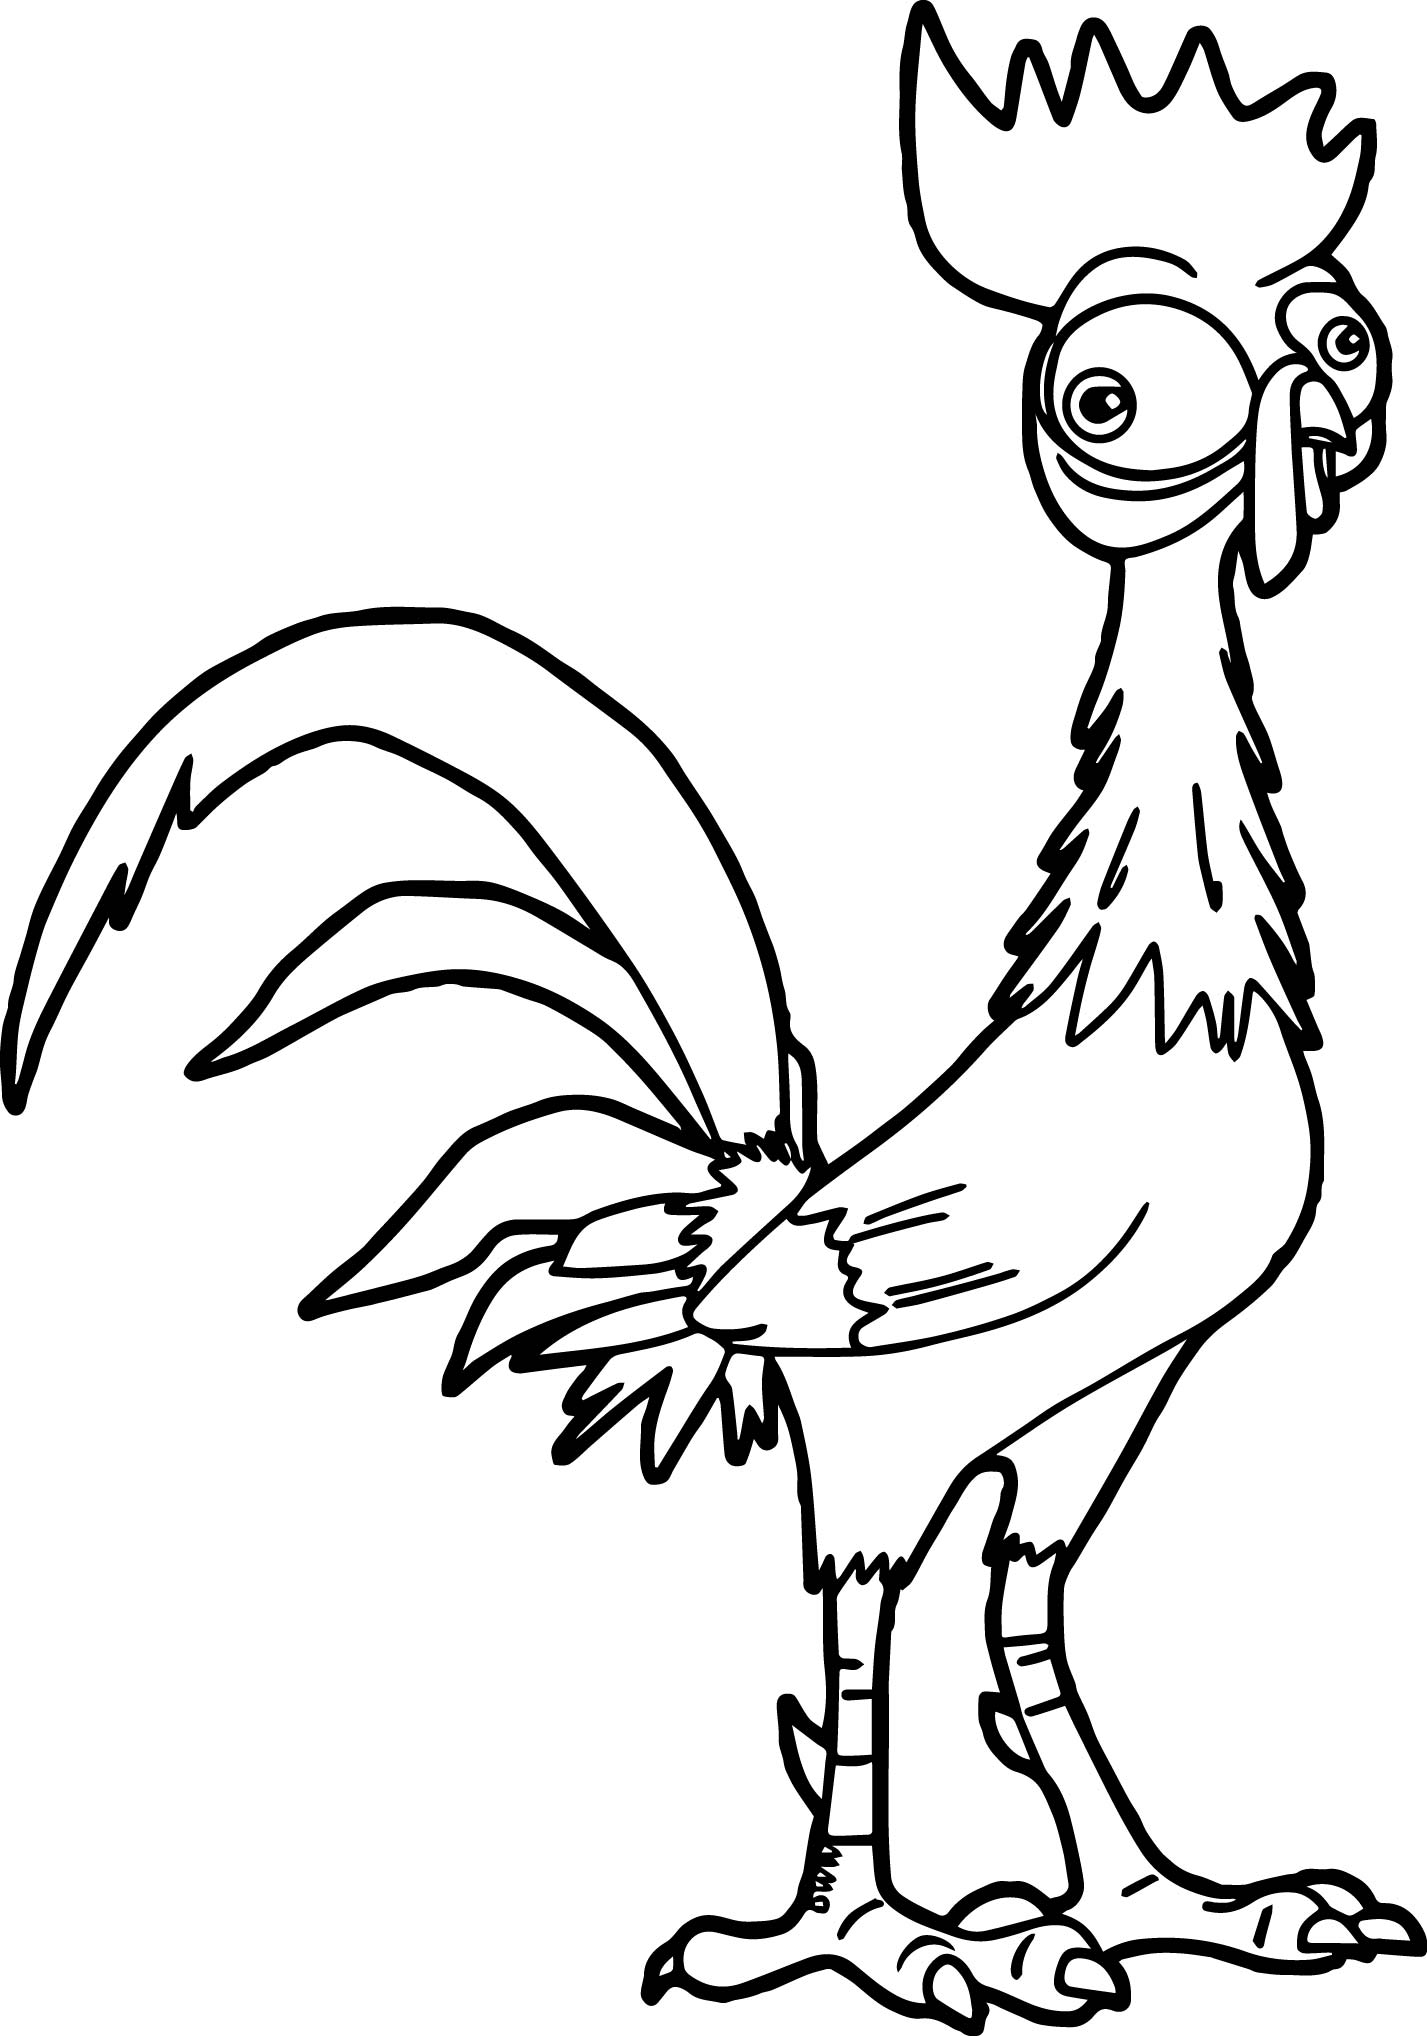 1427x2036 Heihei The Roaster Coloring Page Wecoloringpage